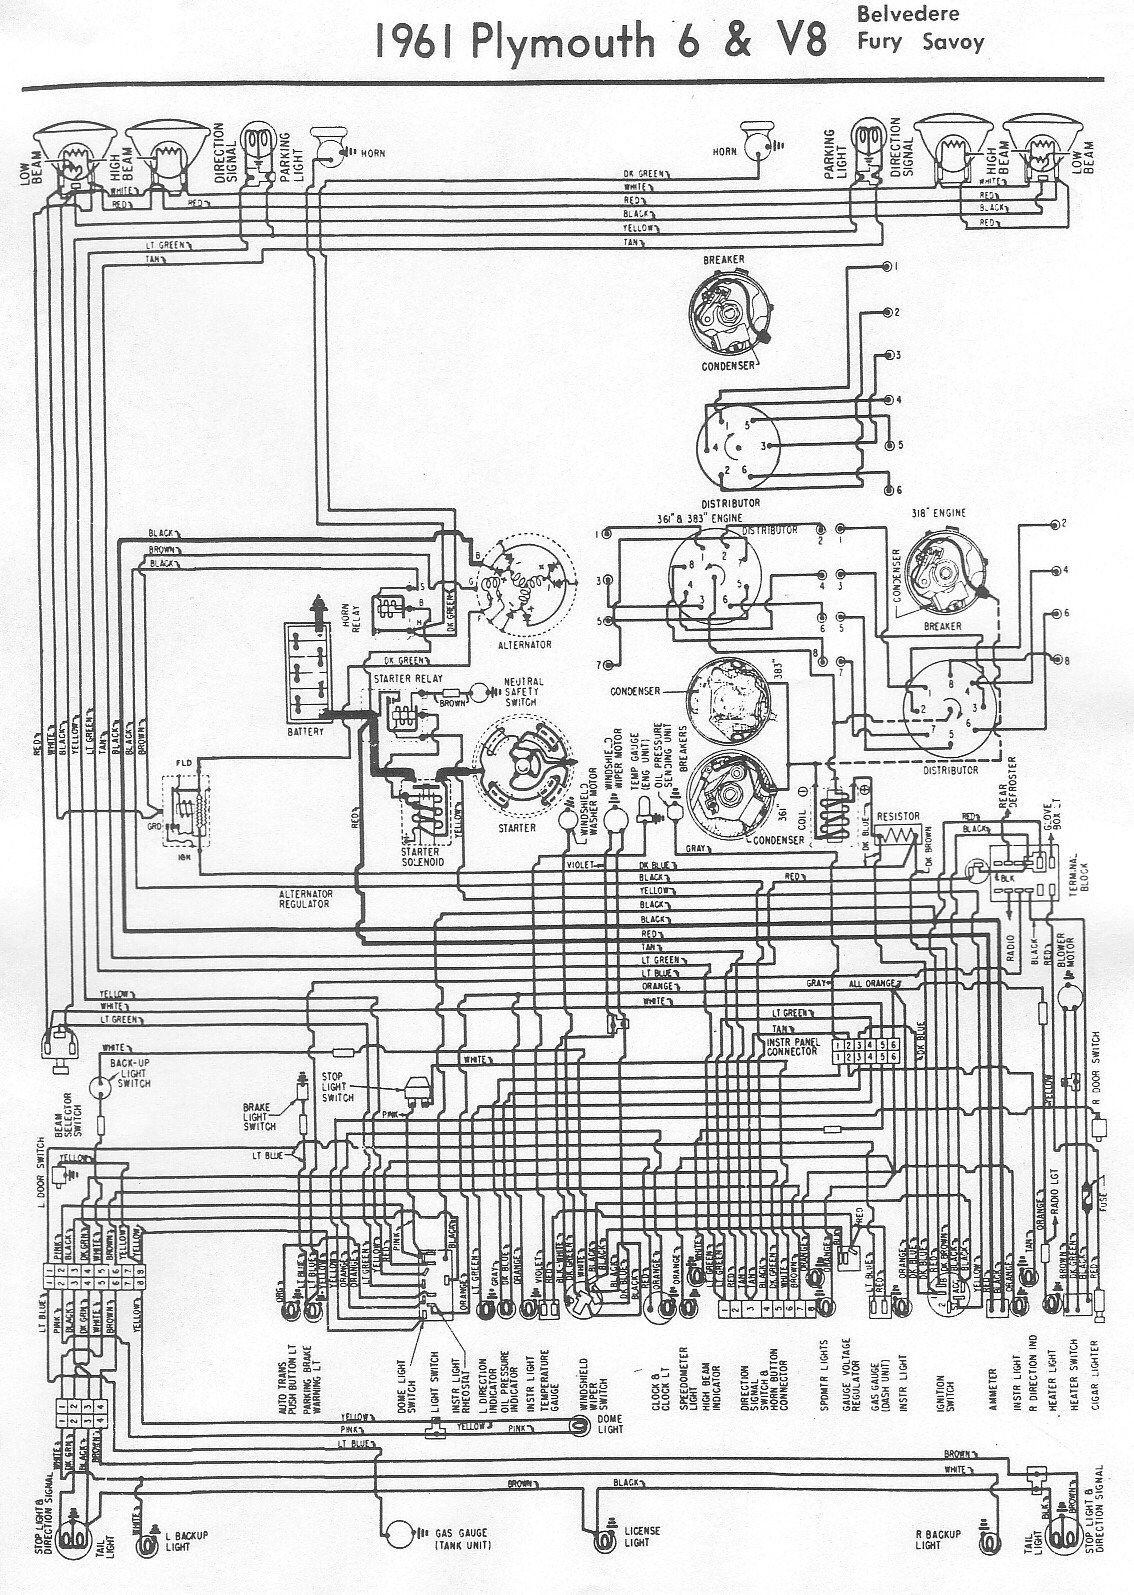 69 plymouth fury wiring diagram wiring diagram fuse box u2022 rh friendsoffido co 1970 Plymouth Fury Convertible 1970 Plymouth Fury Convertible